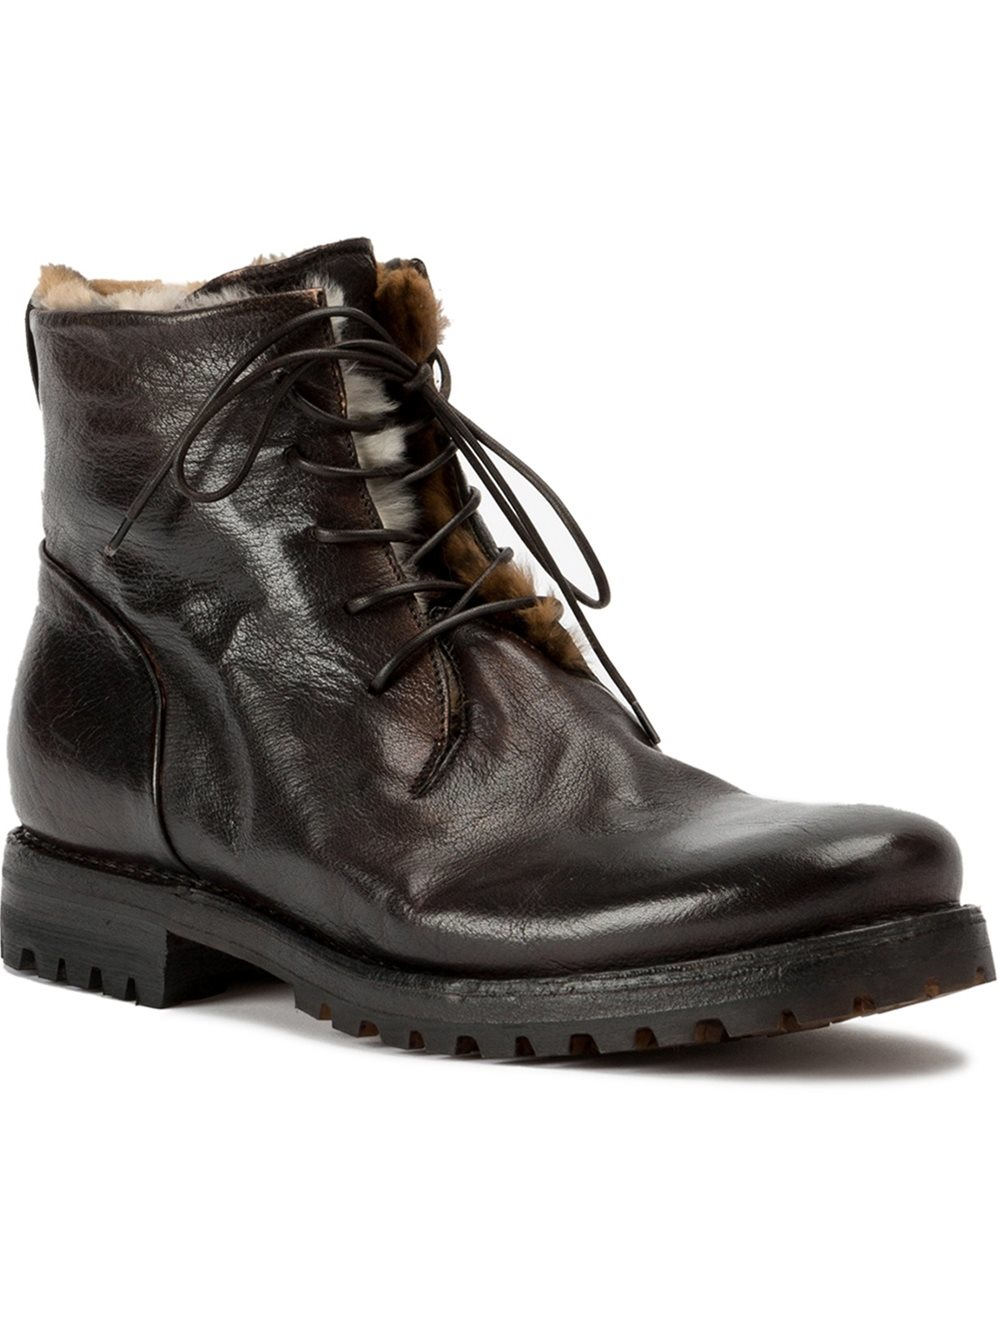 Silvano Sassetti Fur Lined Boots In Black For Men Lyst